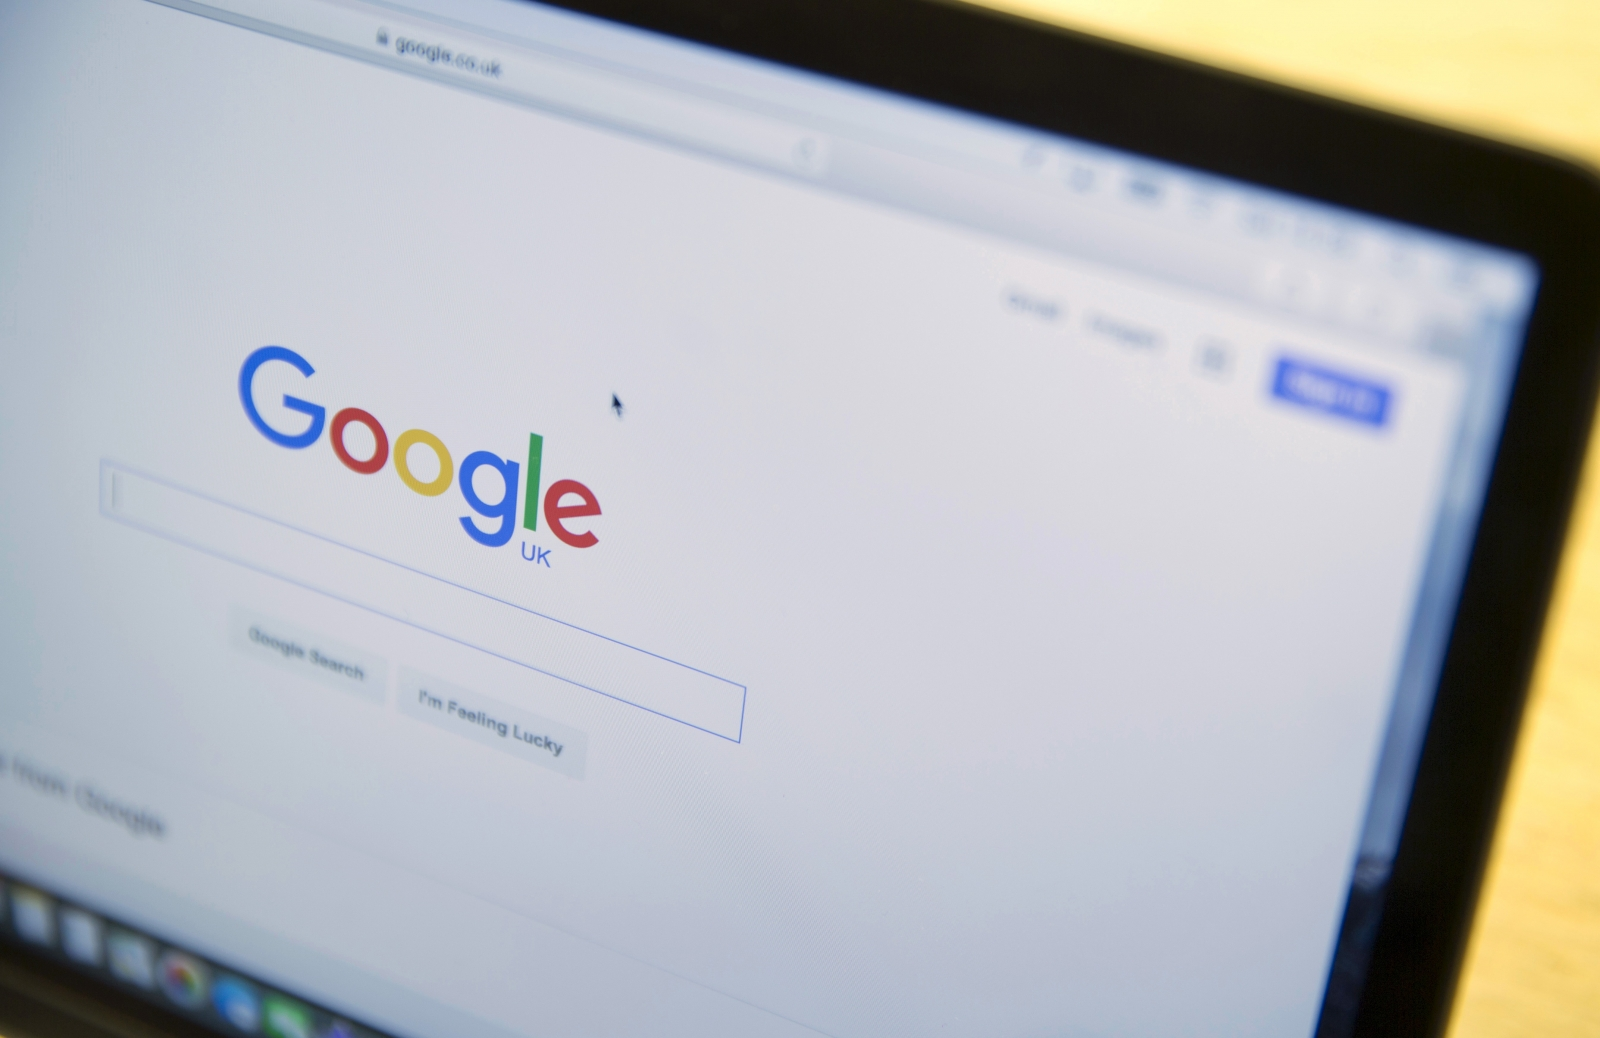 Jewish museum accuses Google of profiting from Holocaust denial